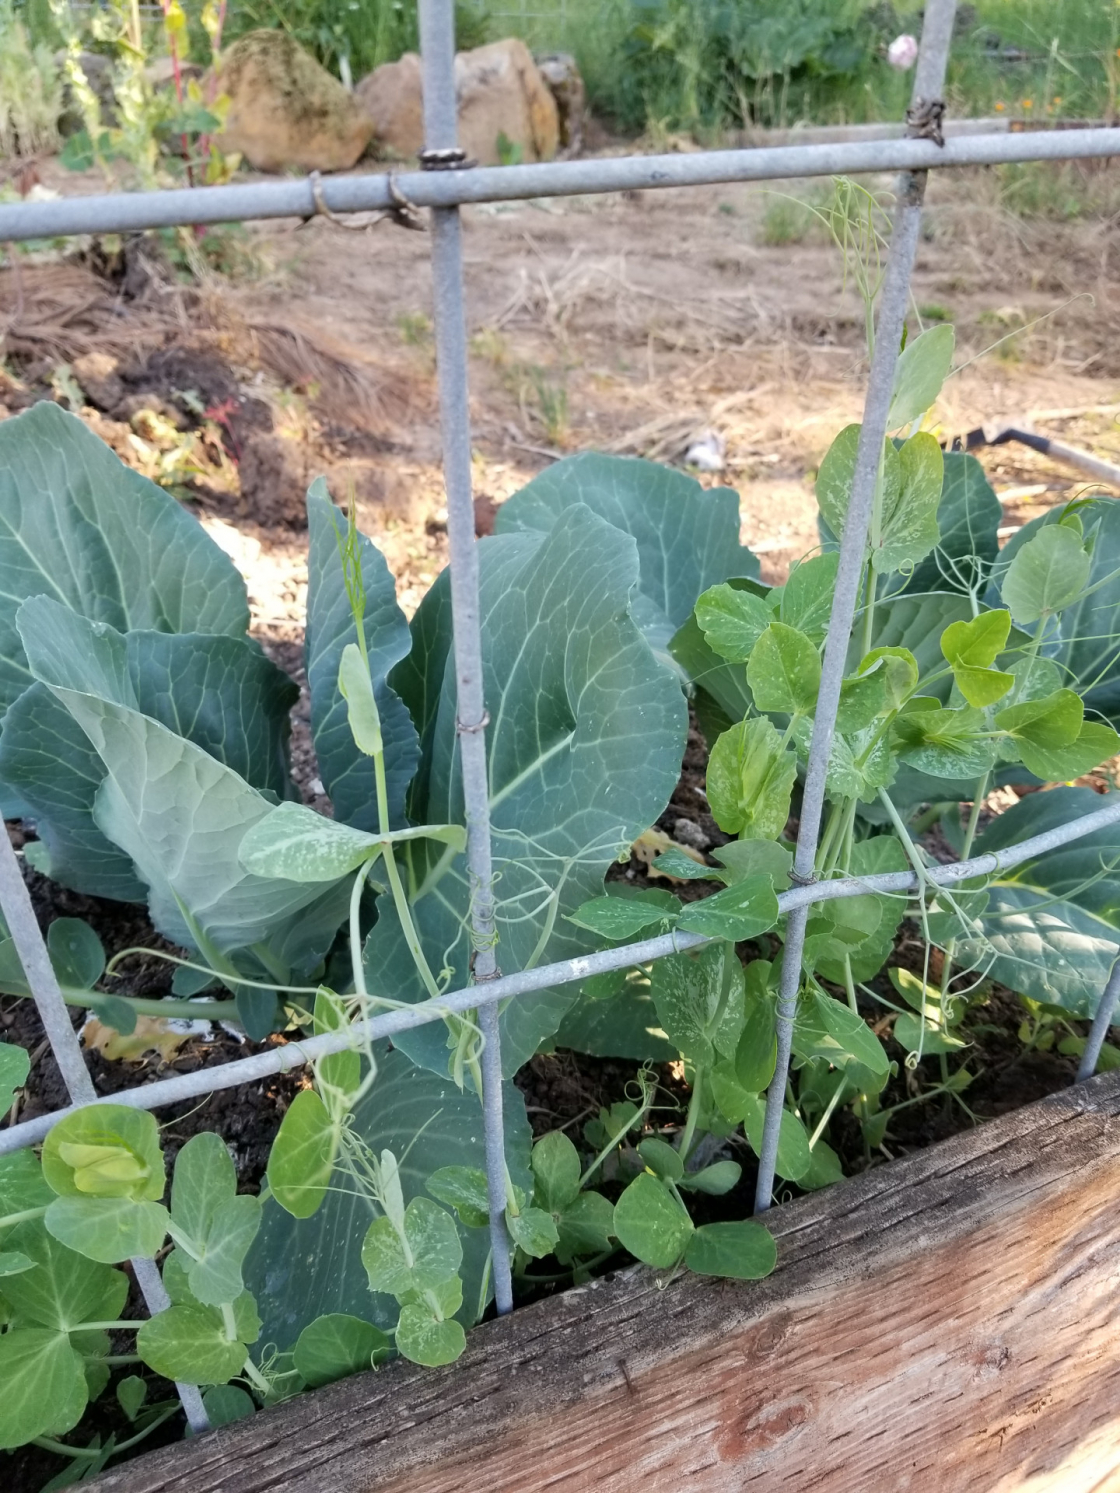 Pea pod plants grow up a trellis made from a cattle panel, while cabbage plants grow behind them.